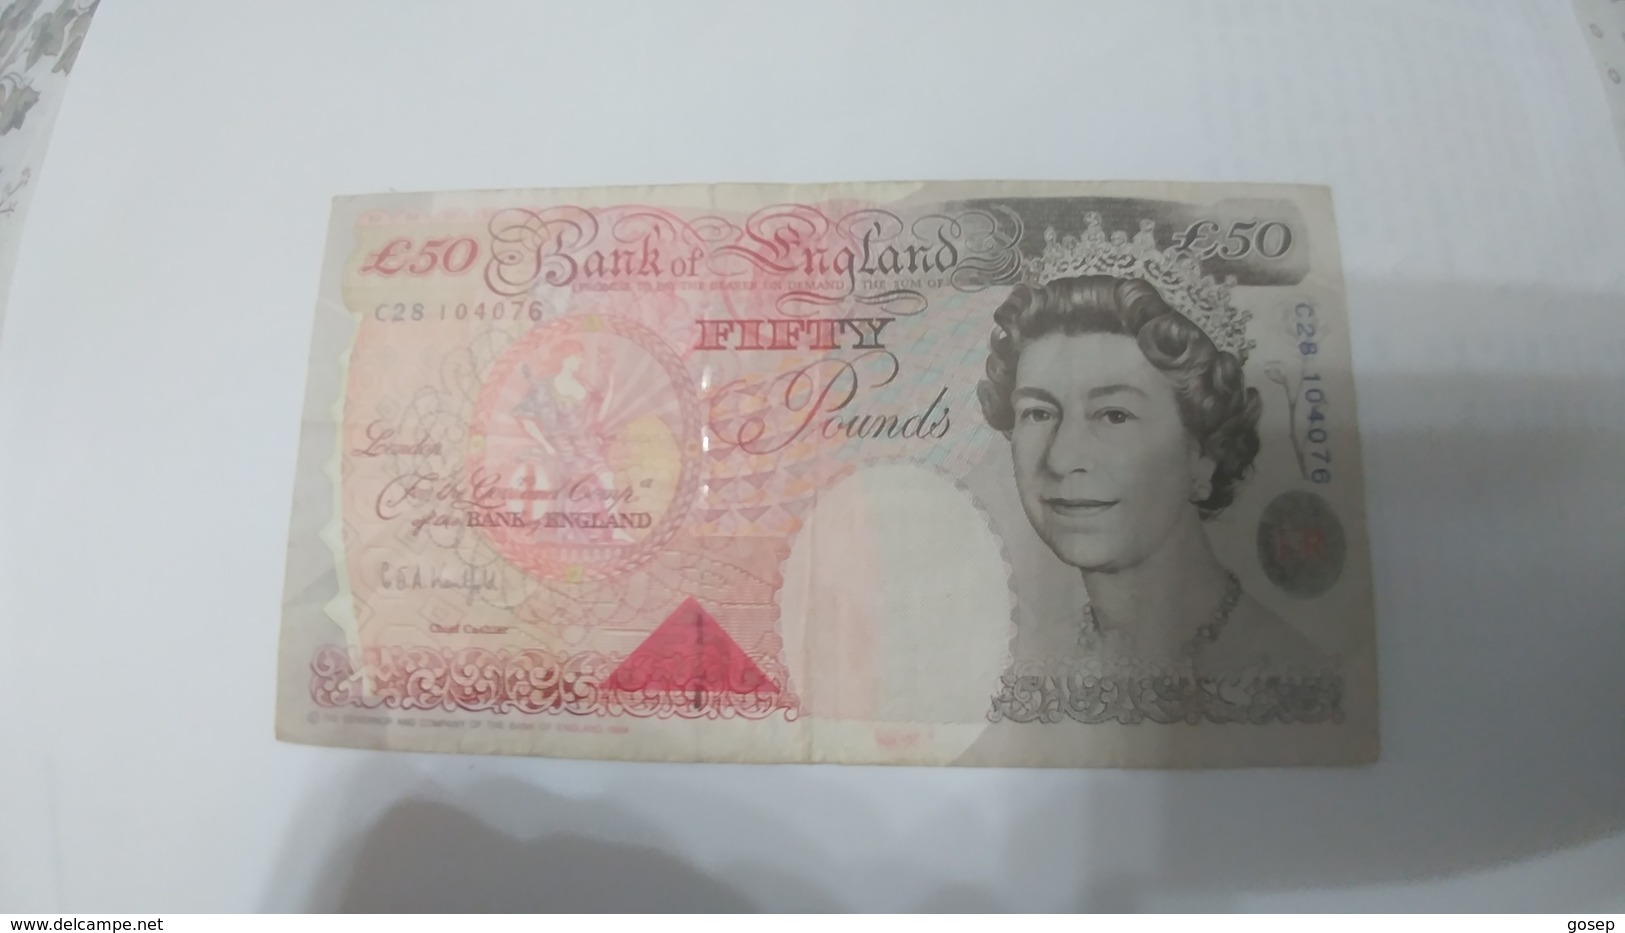 United Kingdom-(50 Pounds)(number Note-C28 104076)-very Good+1bank Note Other Country Free - 1952-… : Elizabeth II